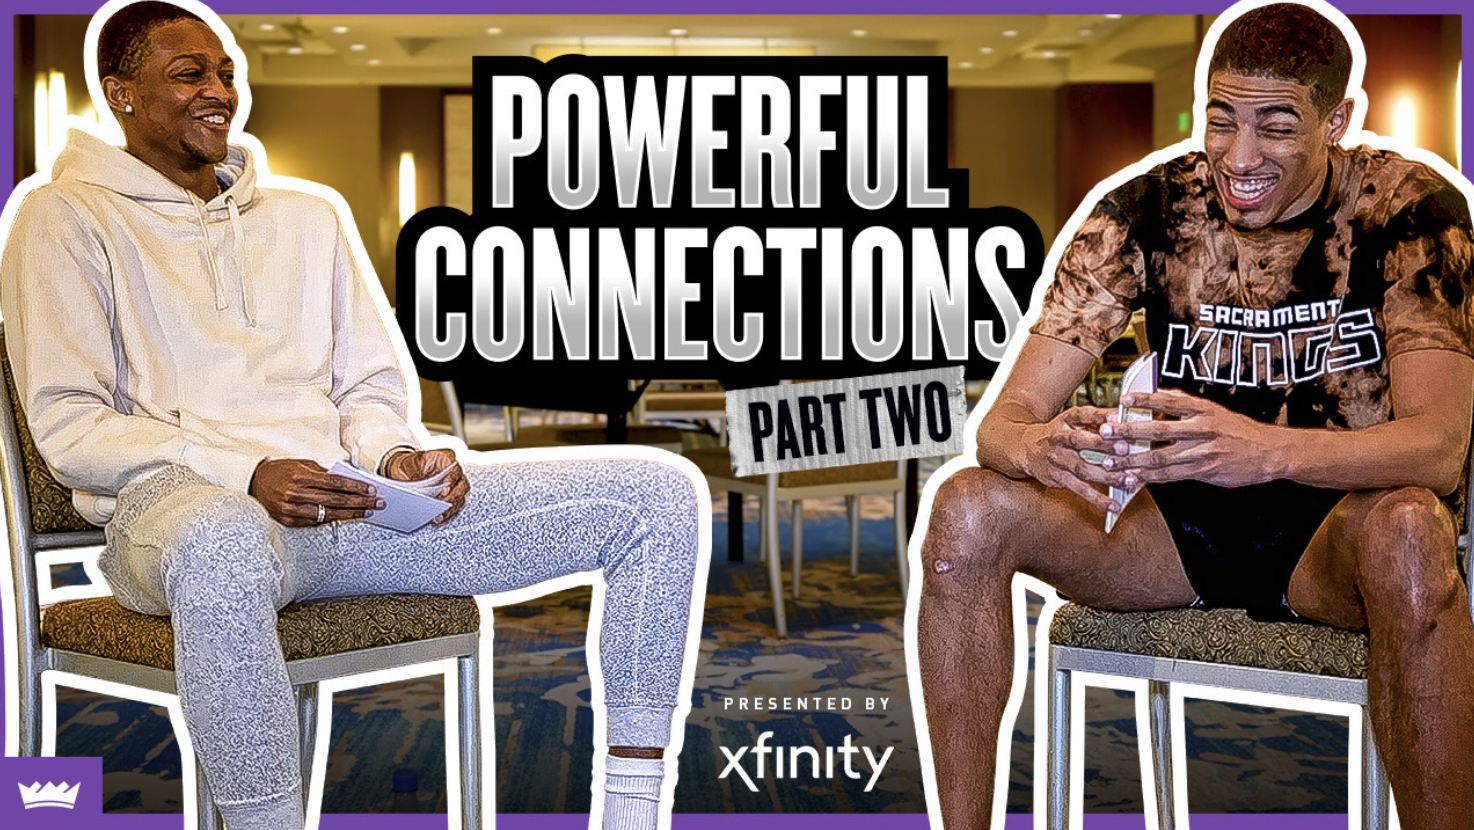 Powerful Connections with De'Aaron Fox and Tyrese Haliburton, Presented by Xfinity | Part 2